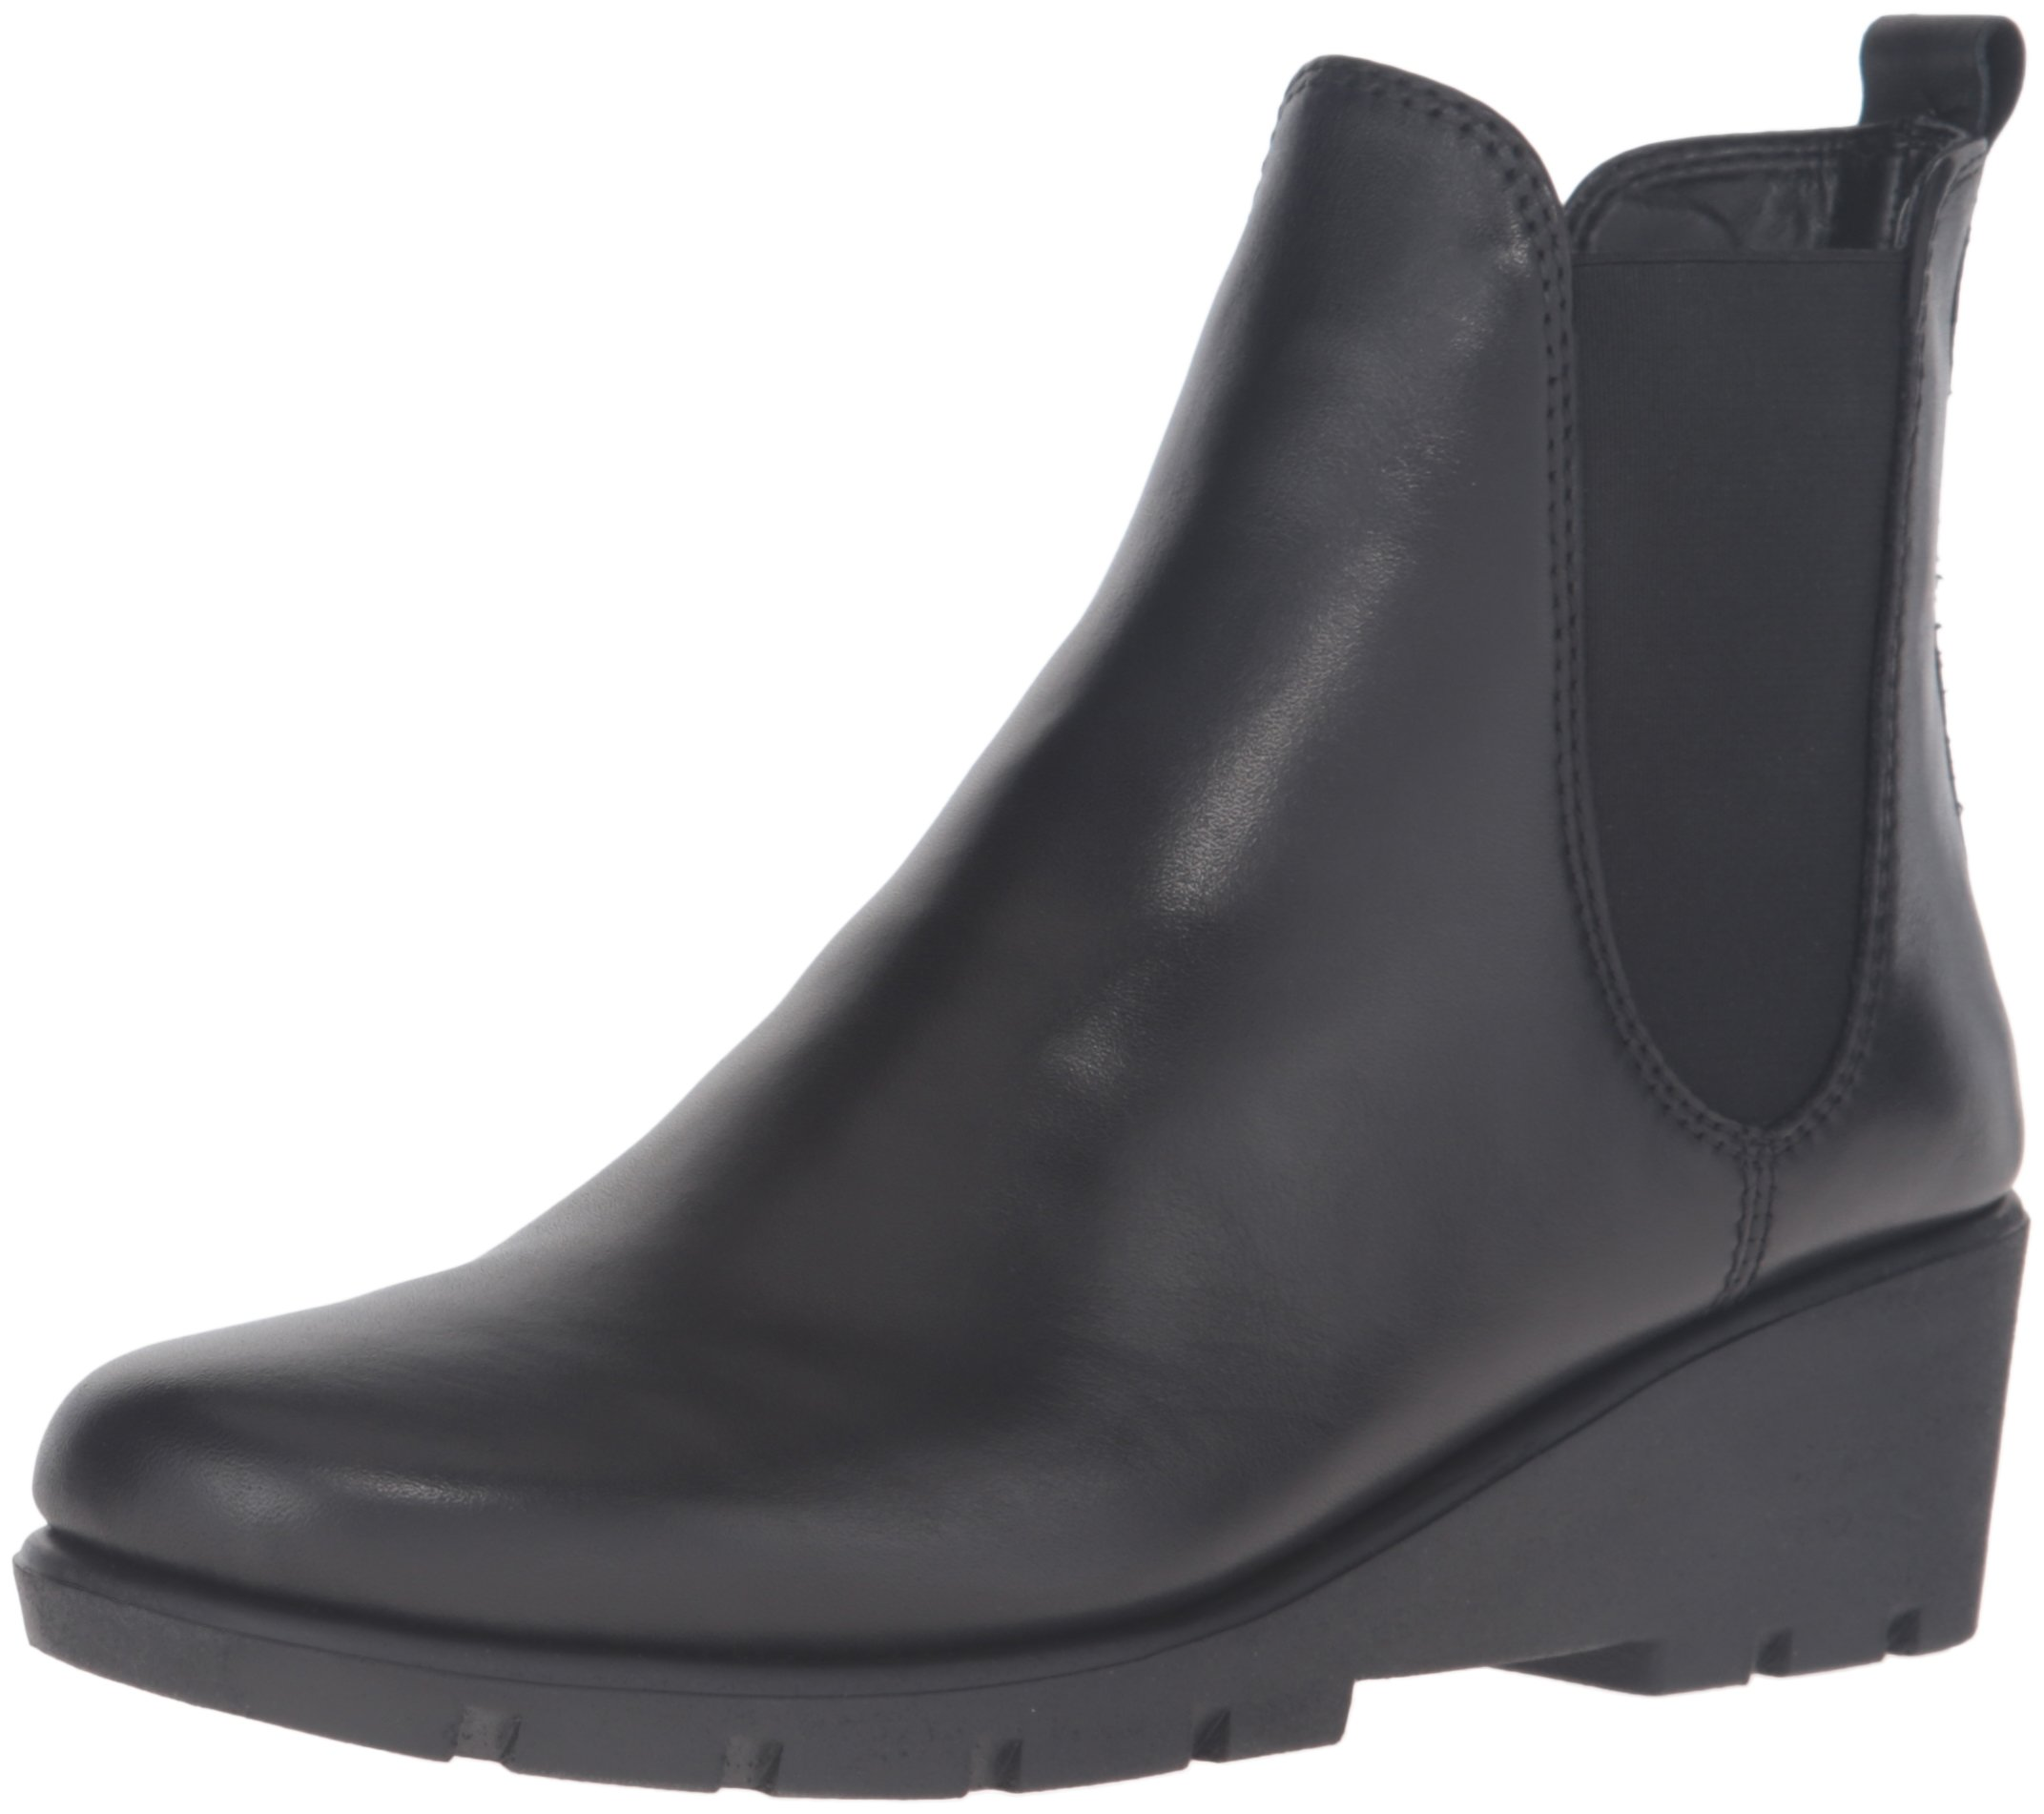 The FLEXX Women's Slimmer Boot, Black Cashmere, 10 M US